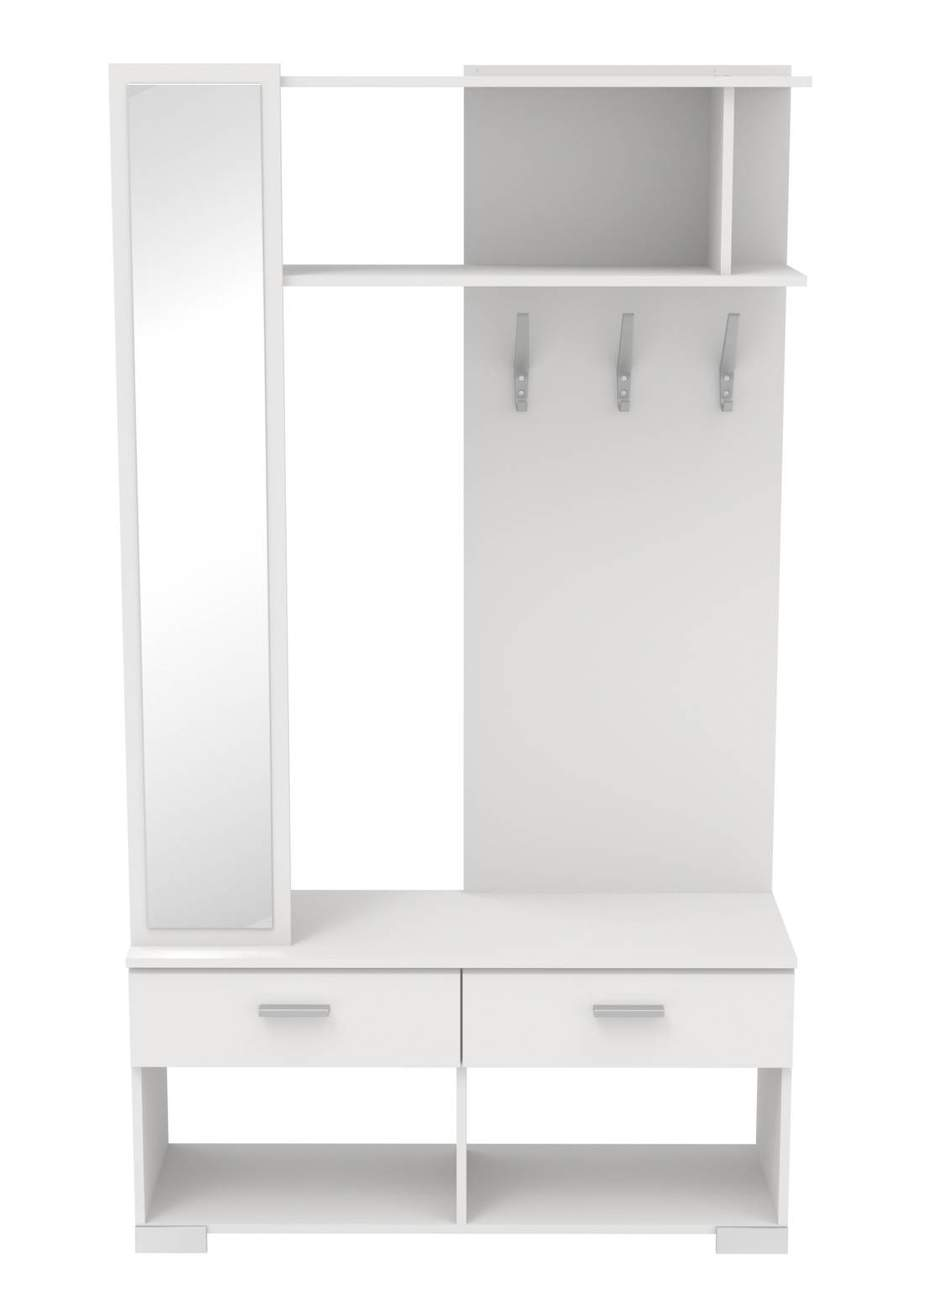 kompakt garderobe galaxy 110 dekor wei wandgarderobe mit spiegel. Black Bedroom Furniture Sets. Home Design Ideas